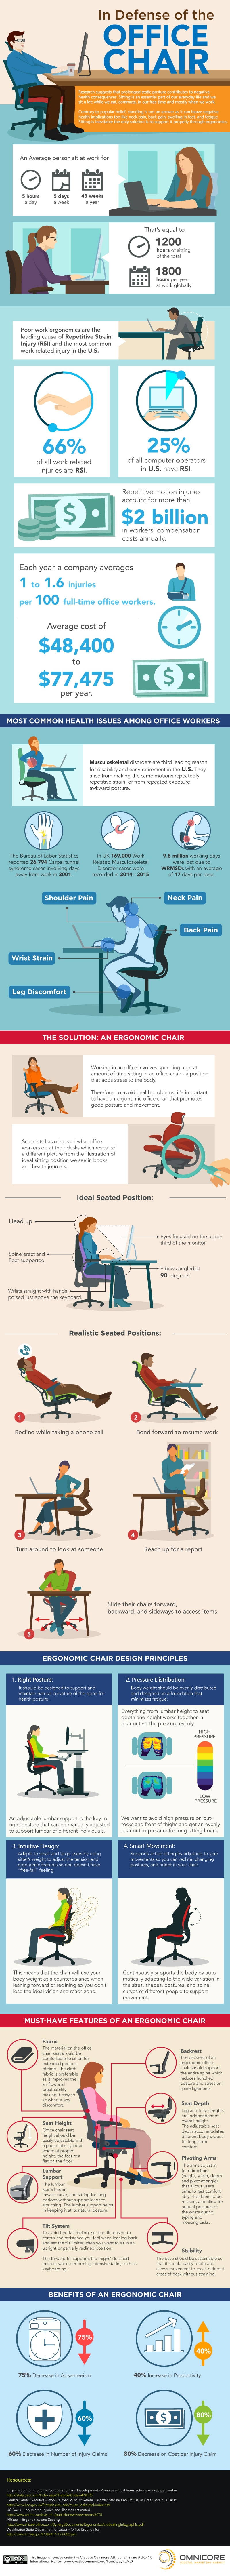 How You Should Really Be Sitting at Your Desk : Mental Floss